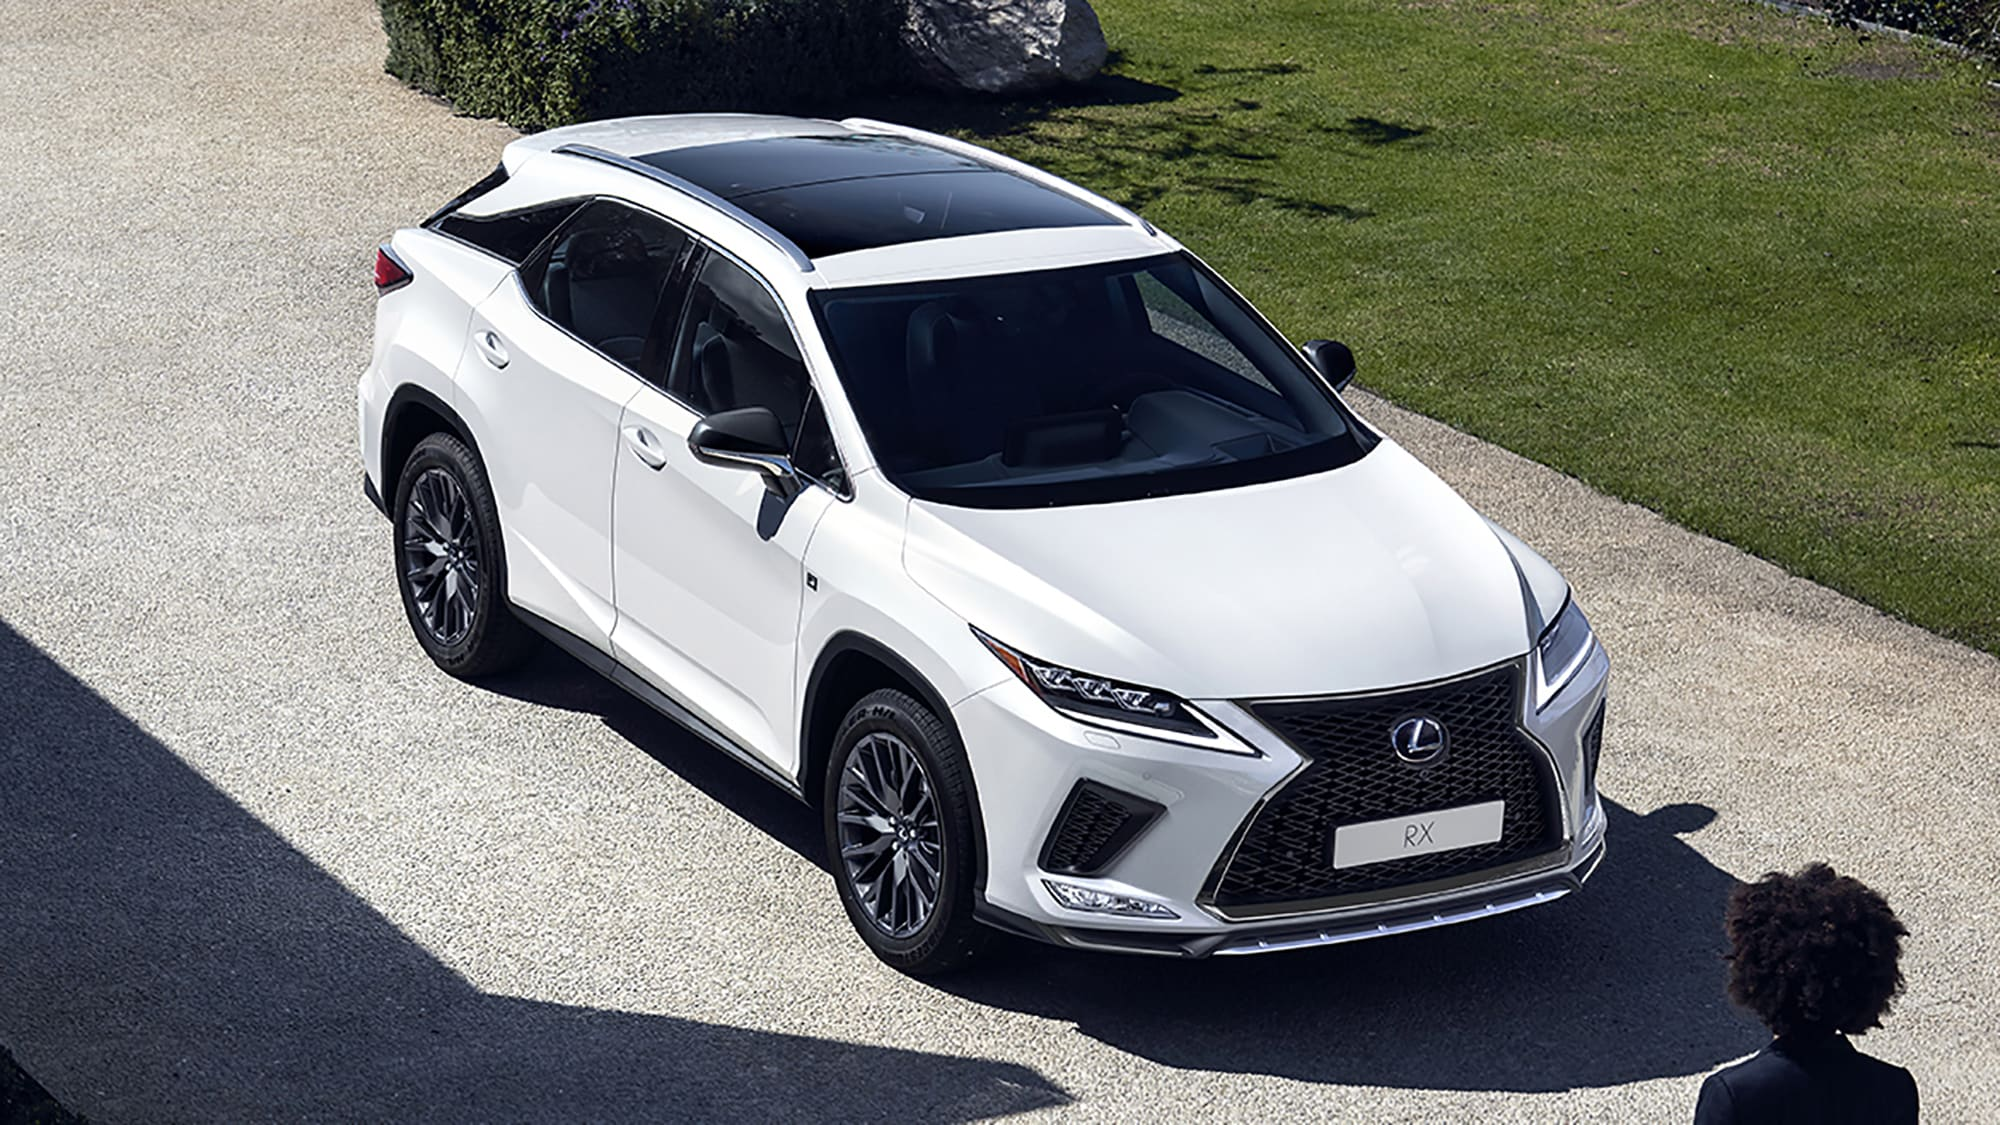 2020 Lexus Rx Revealed Here Late In 2019 Caradvice